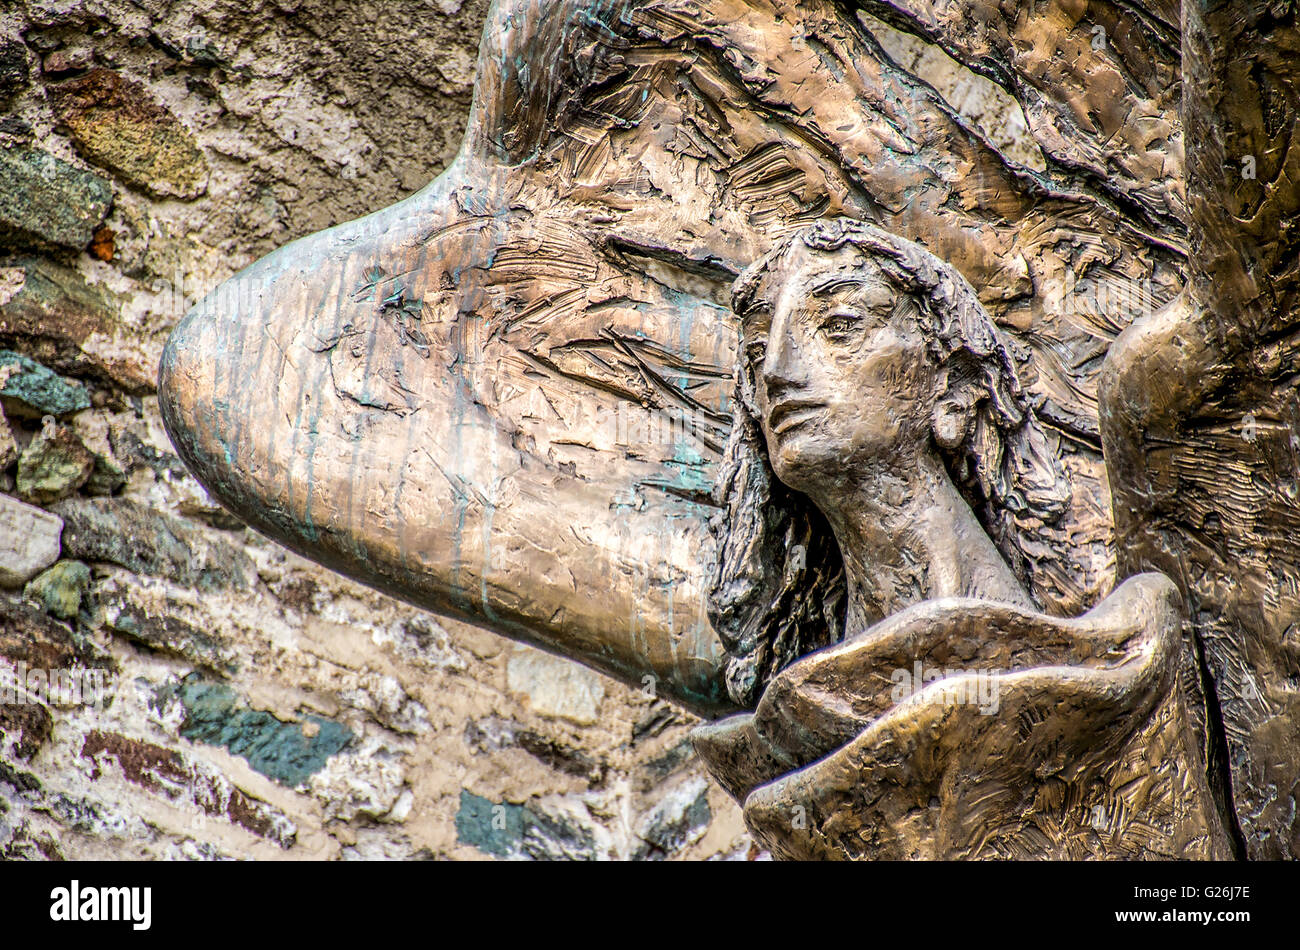 The statue of Saint Michael outside the walls of the Sacra of San Michele monastery - Stock Image